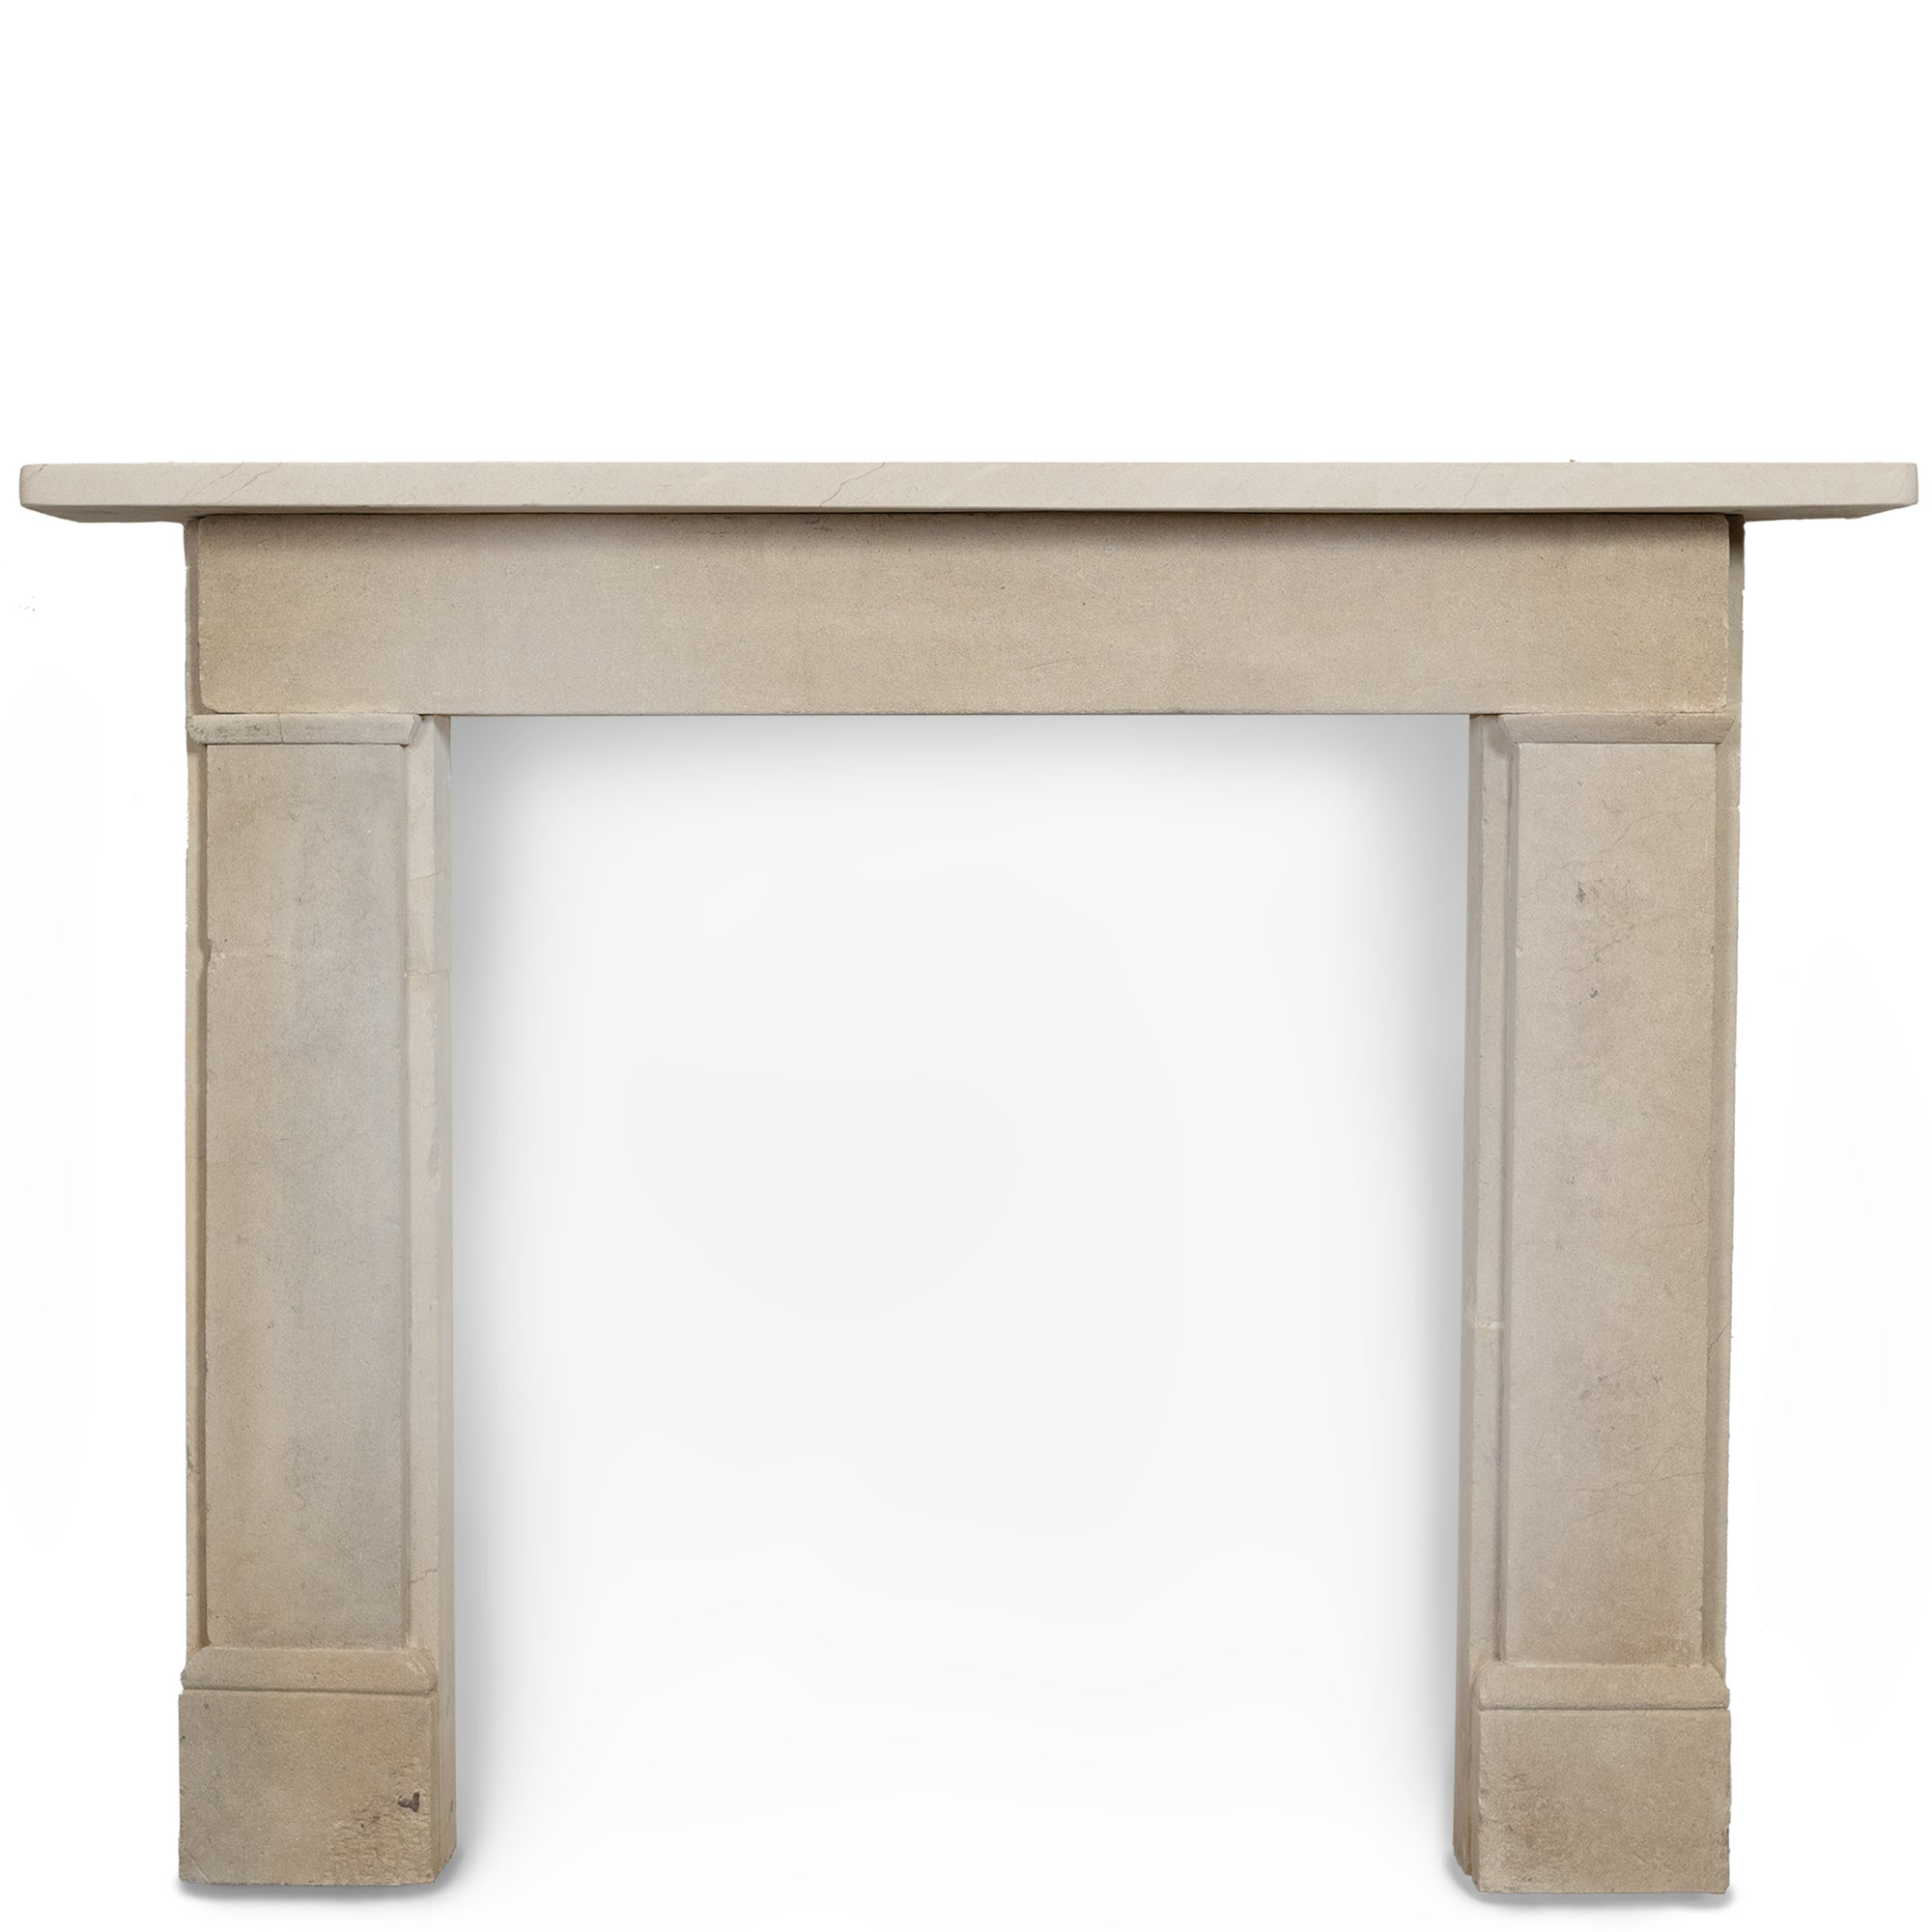 Antique Victorian Bath Stone Fireplace Surround | The Architectural Forum